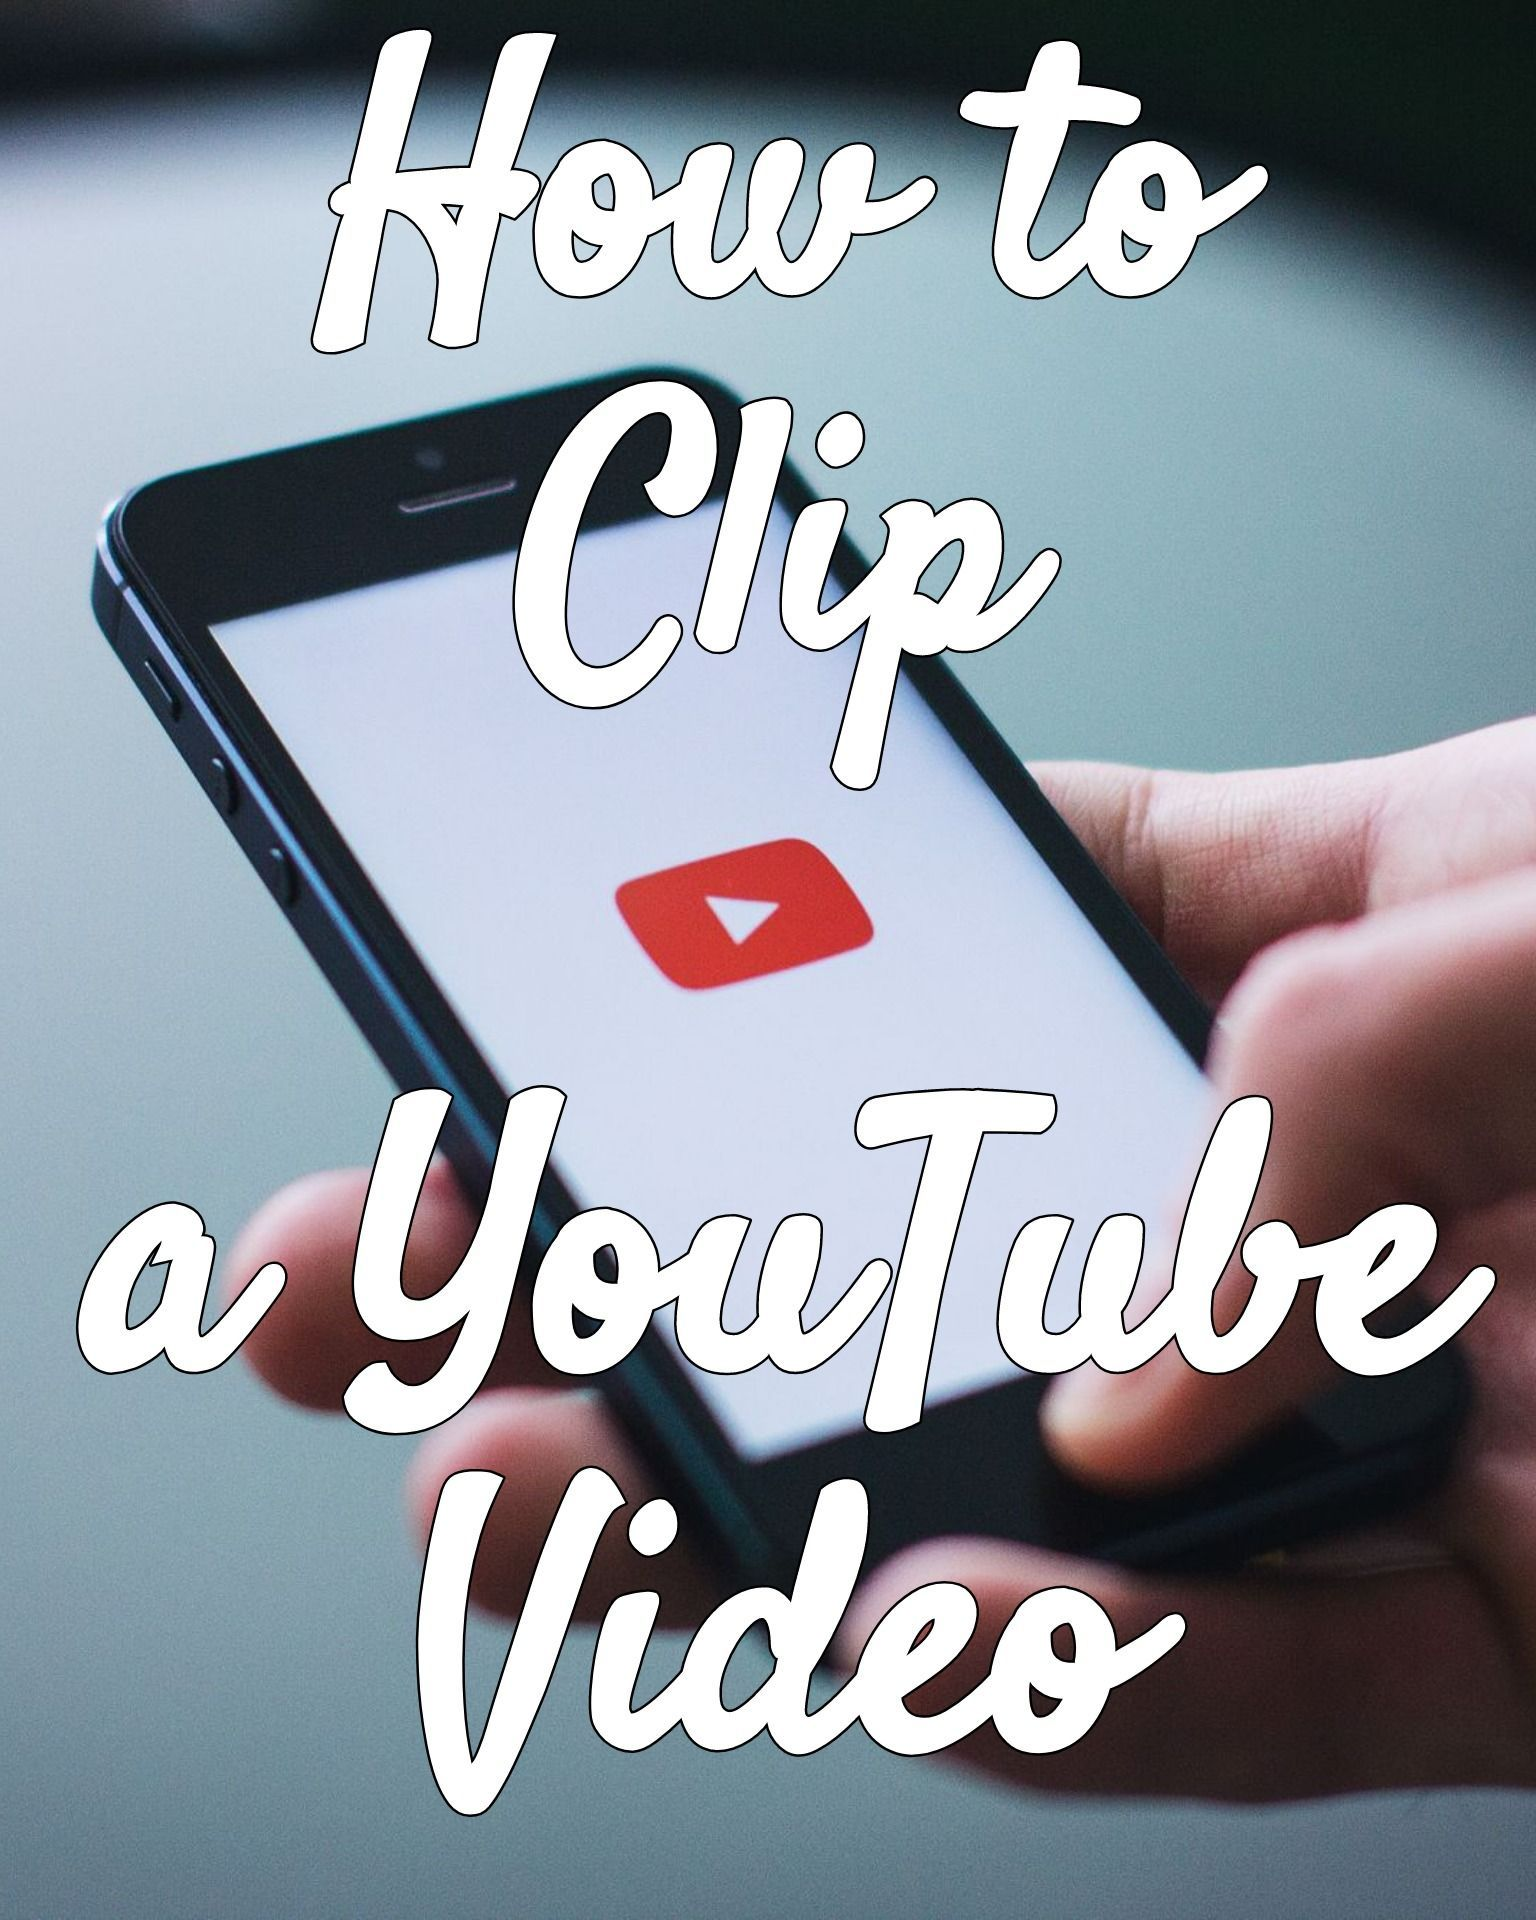 How To Clip A Youtube Video Youtube Videos Youtube Editing Free Online Videos